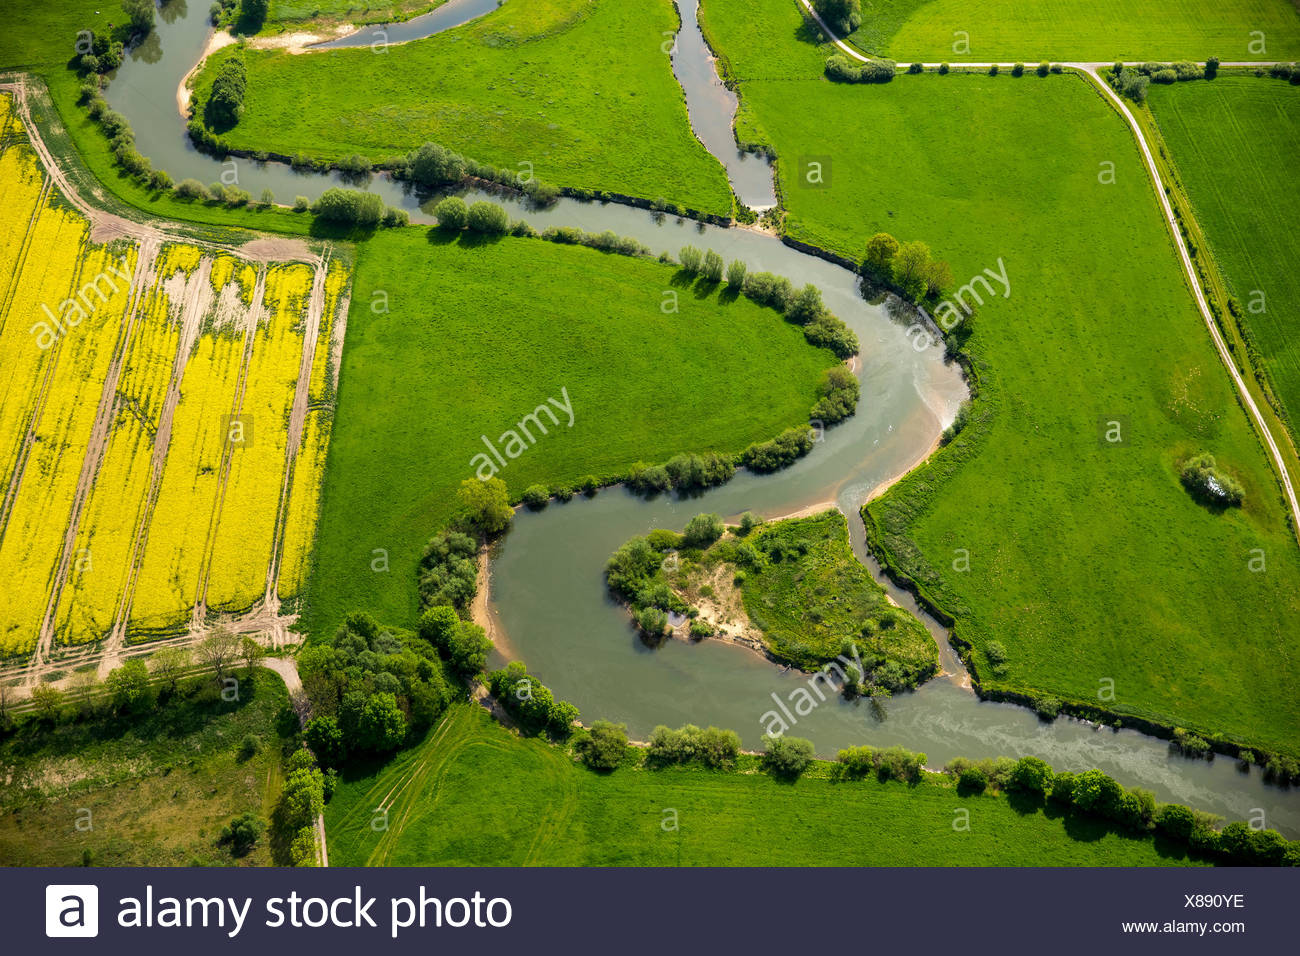 Renaturation, meander of the river Lippe, LIFE+ Project Lippeaue, Hamm, Ruhr district, North Rhine-Westphalia, Germany - Stock Image